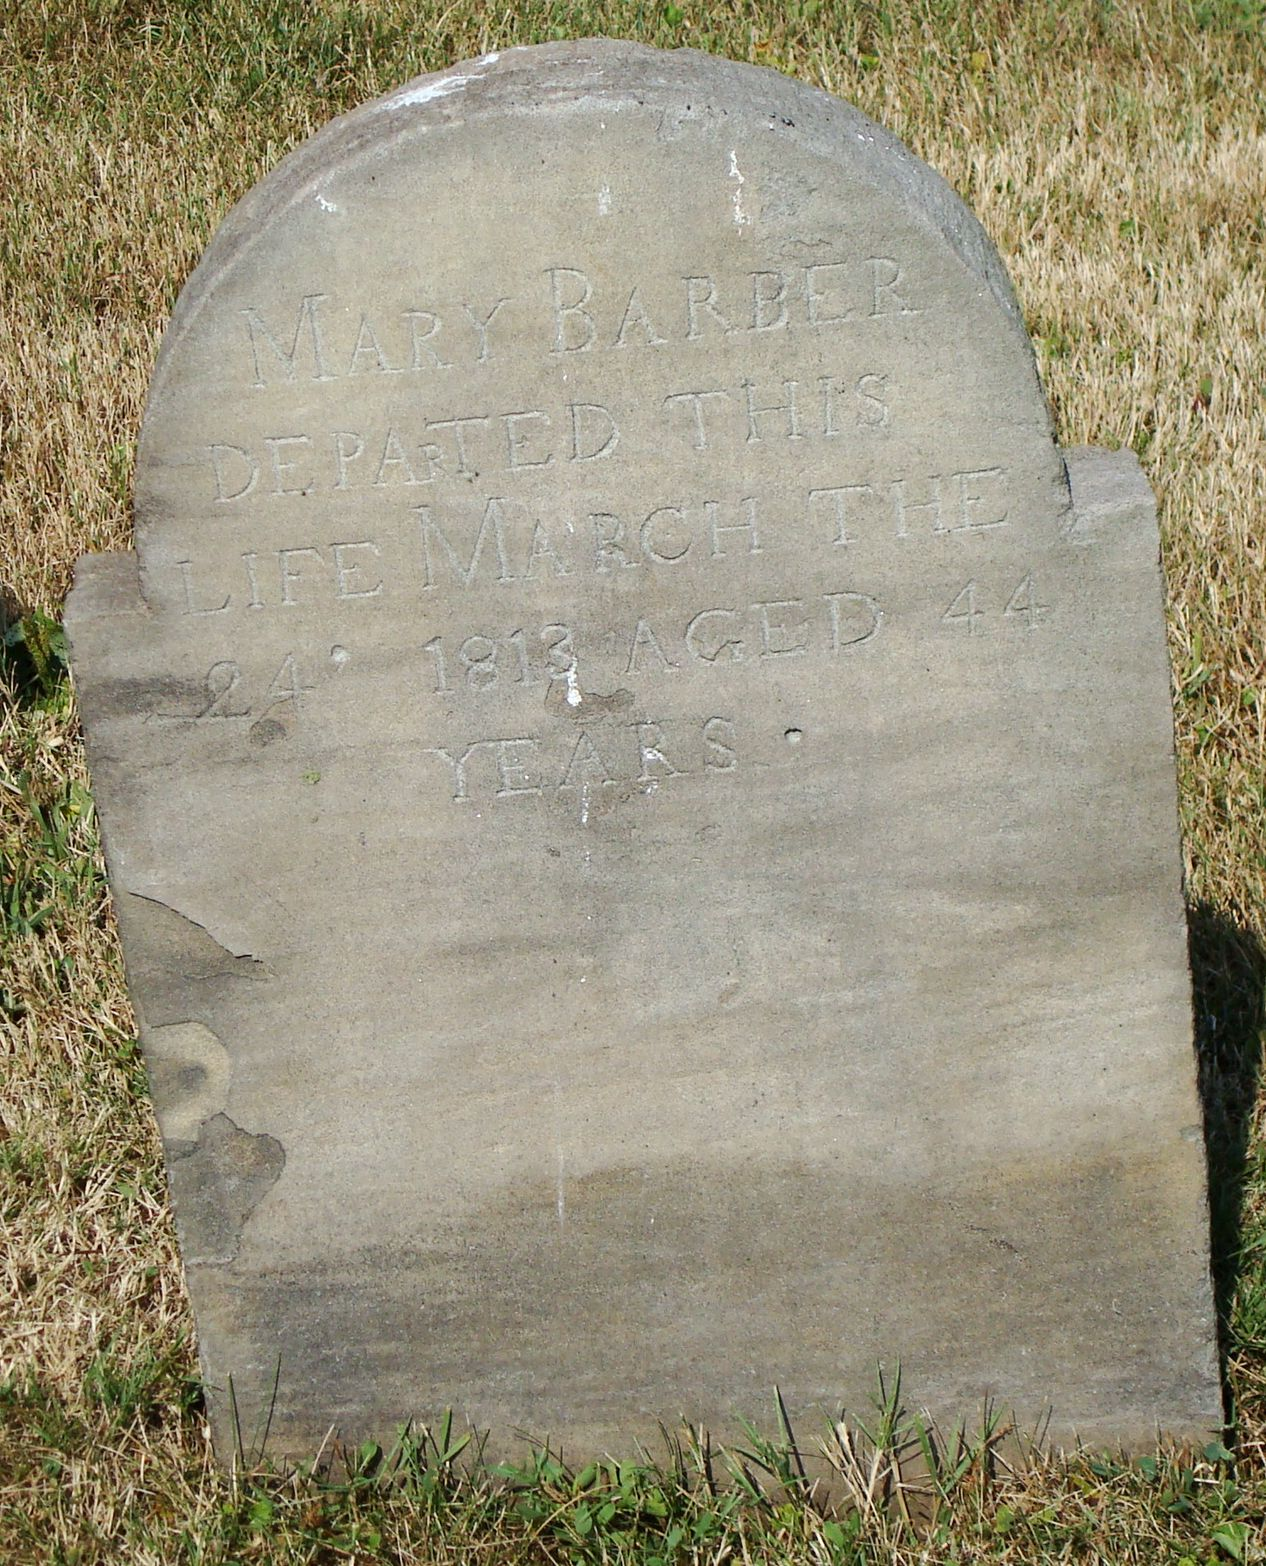 Mary Barber stone South Plain Grove Cemetery